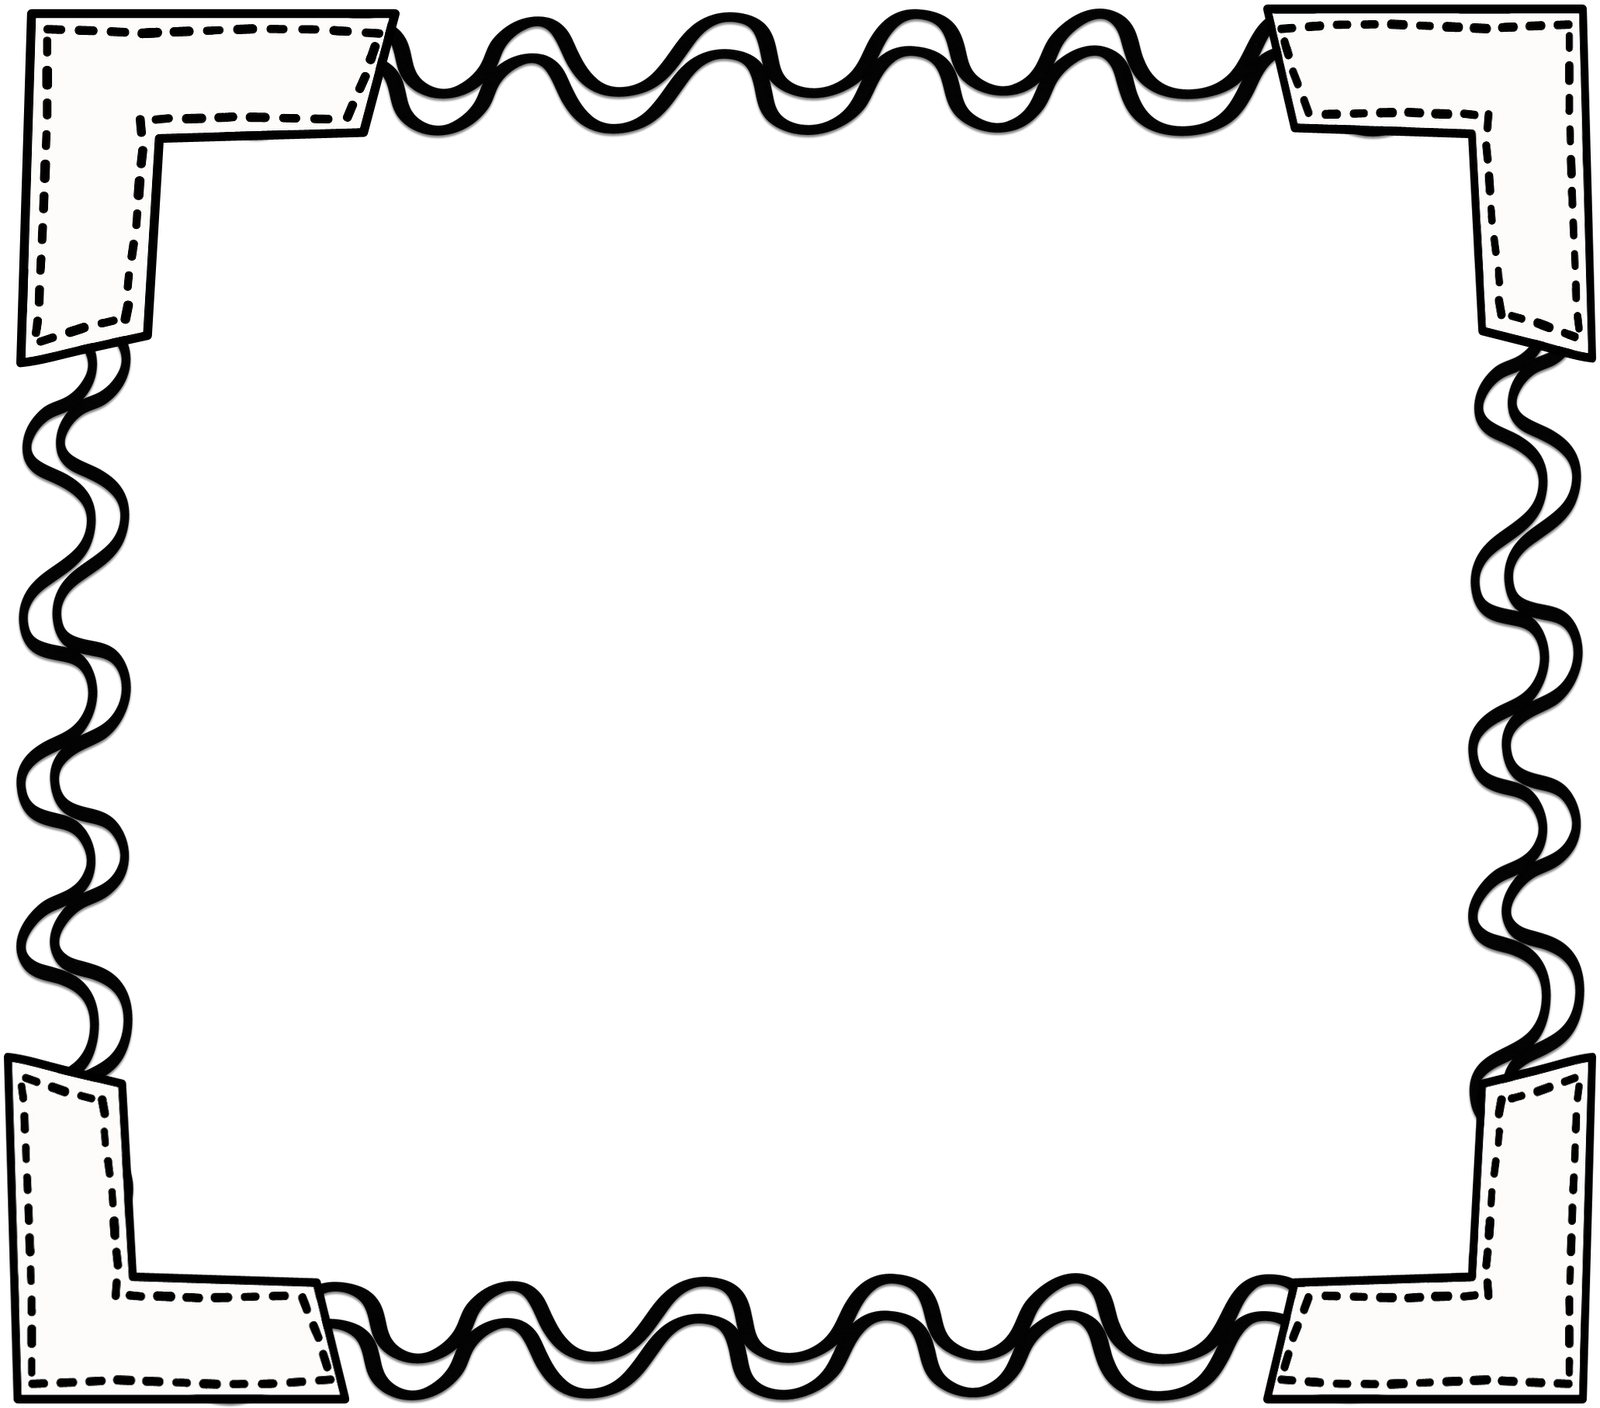 royalty free stock School clipart borders. Black white scribbleframe png